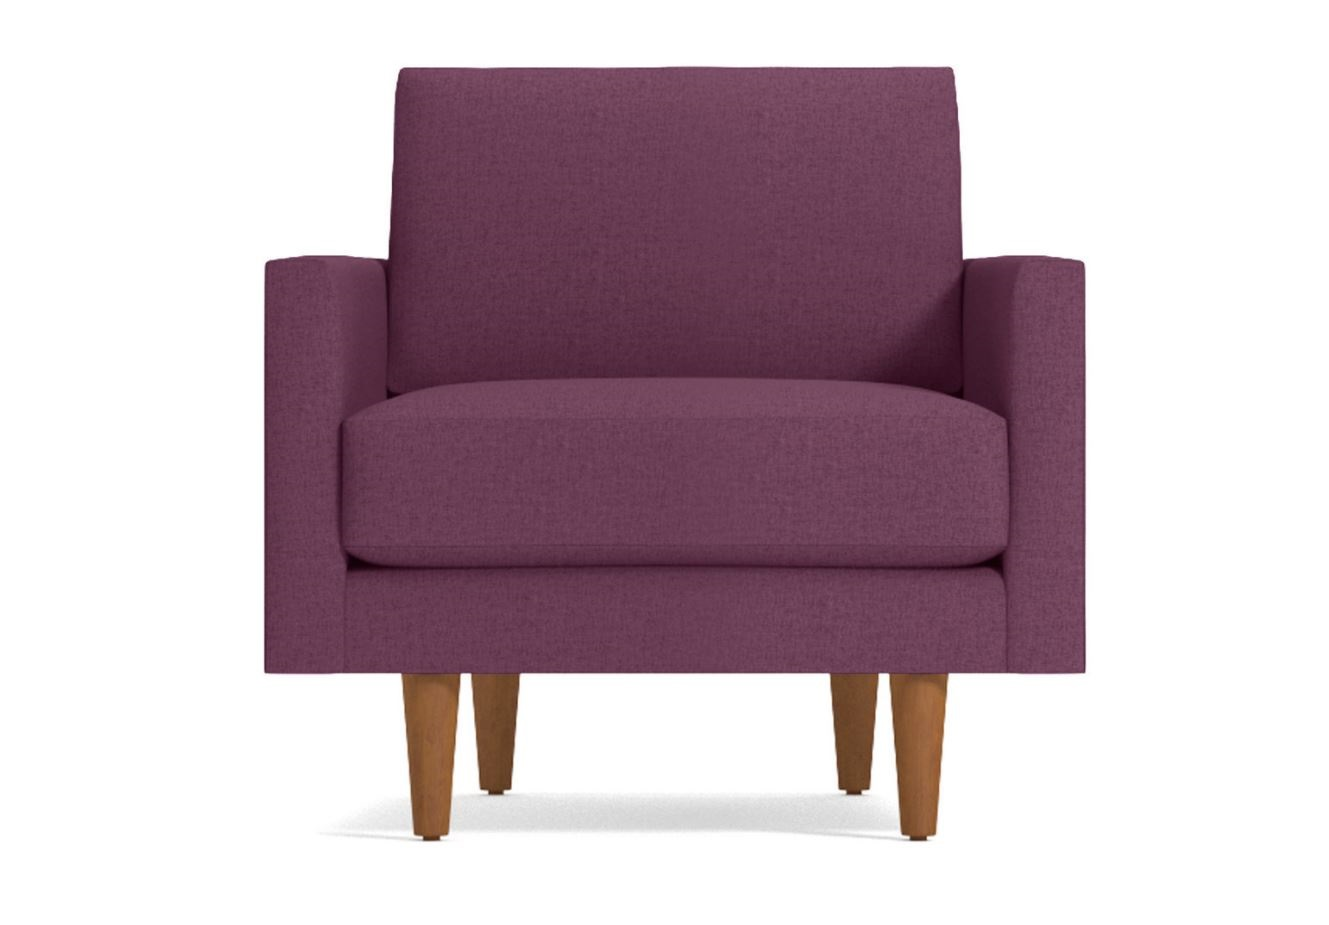 Juket Sofa Purble